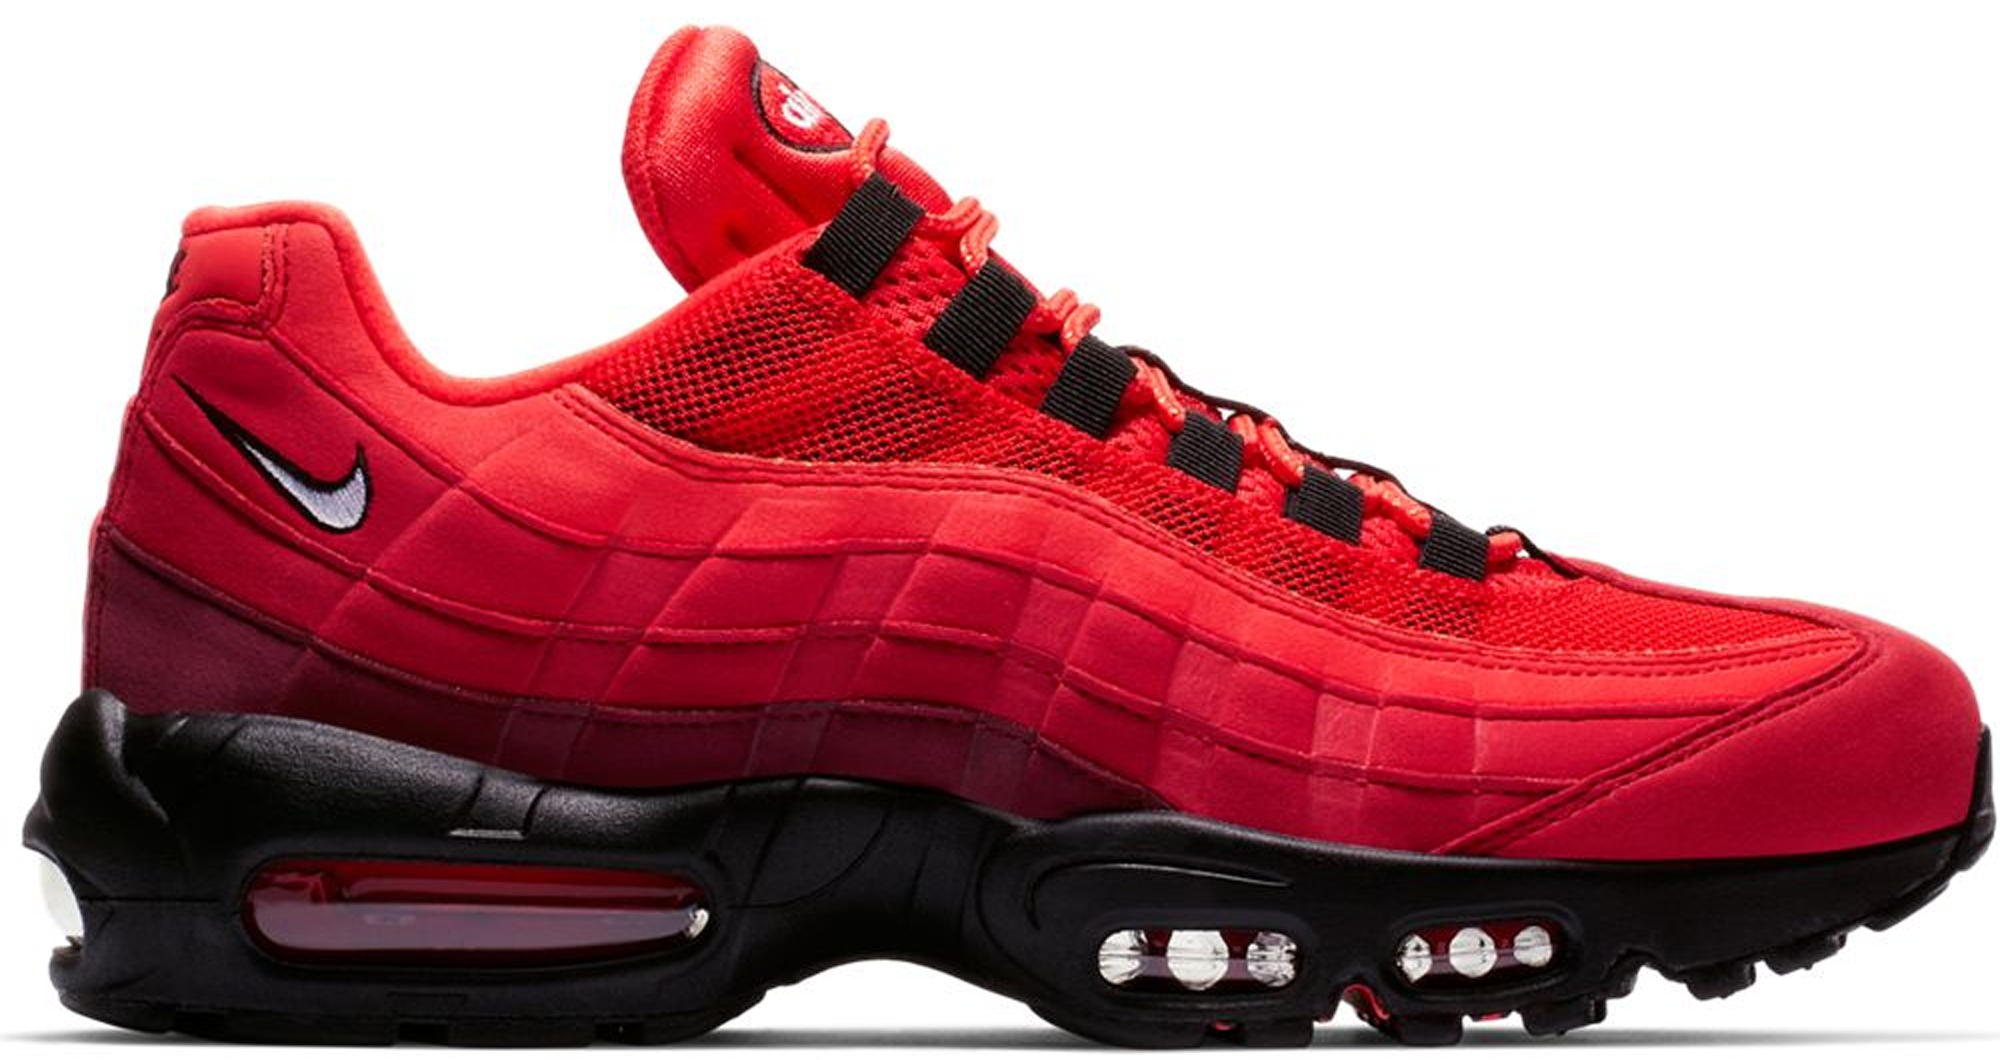 Air Max 95 OG Habanero Red